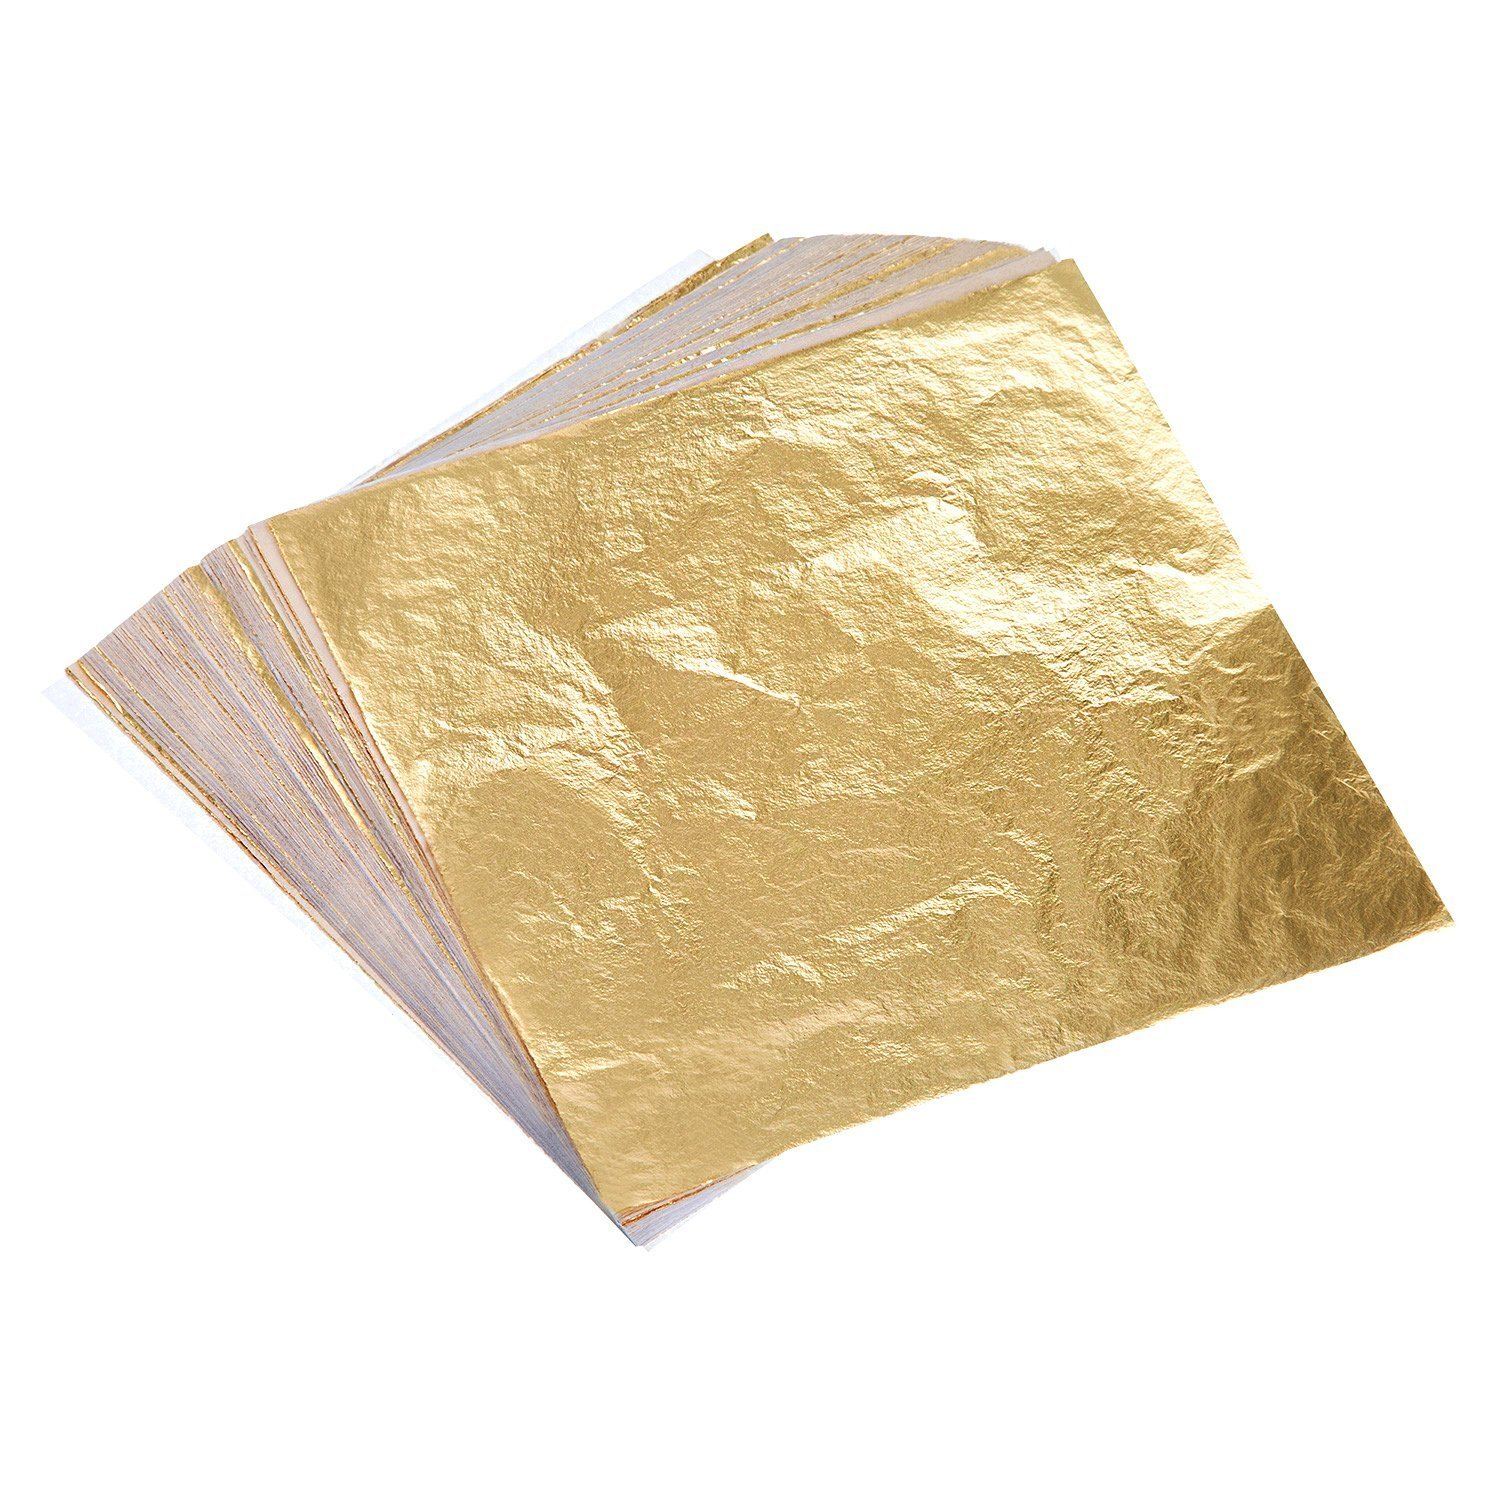 Professional Quality Imitation Gold Leaf Sheets, 25 Sheets, 5.5 inches Booklet (Loose/Type 2.5) sim depot